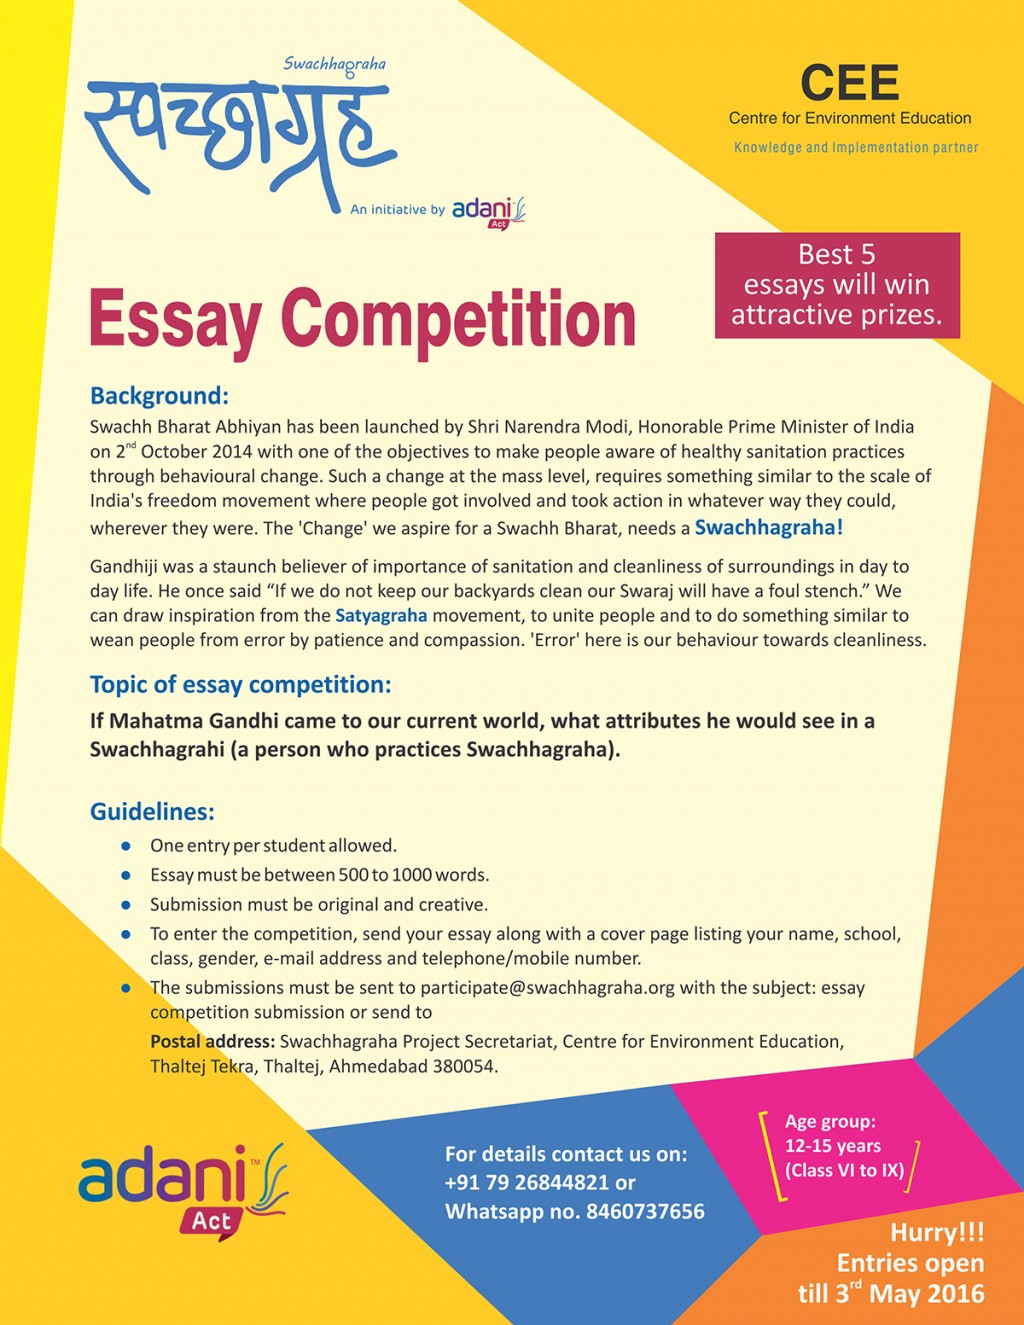 011 20180129171946essay20competition Essay About Cleanliness In School Phenomenal On Premises Toilets Writing Large